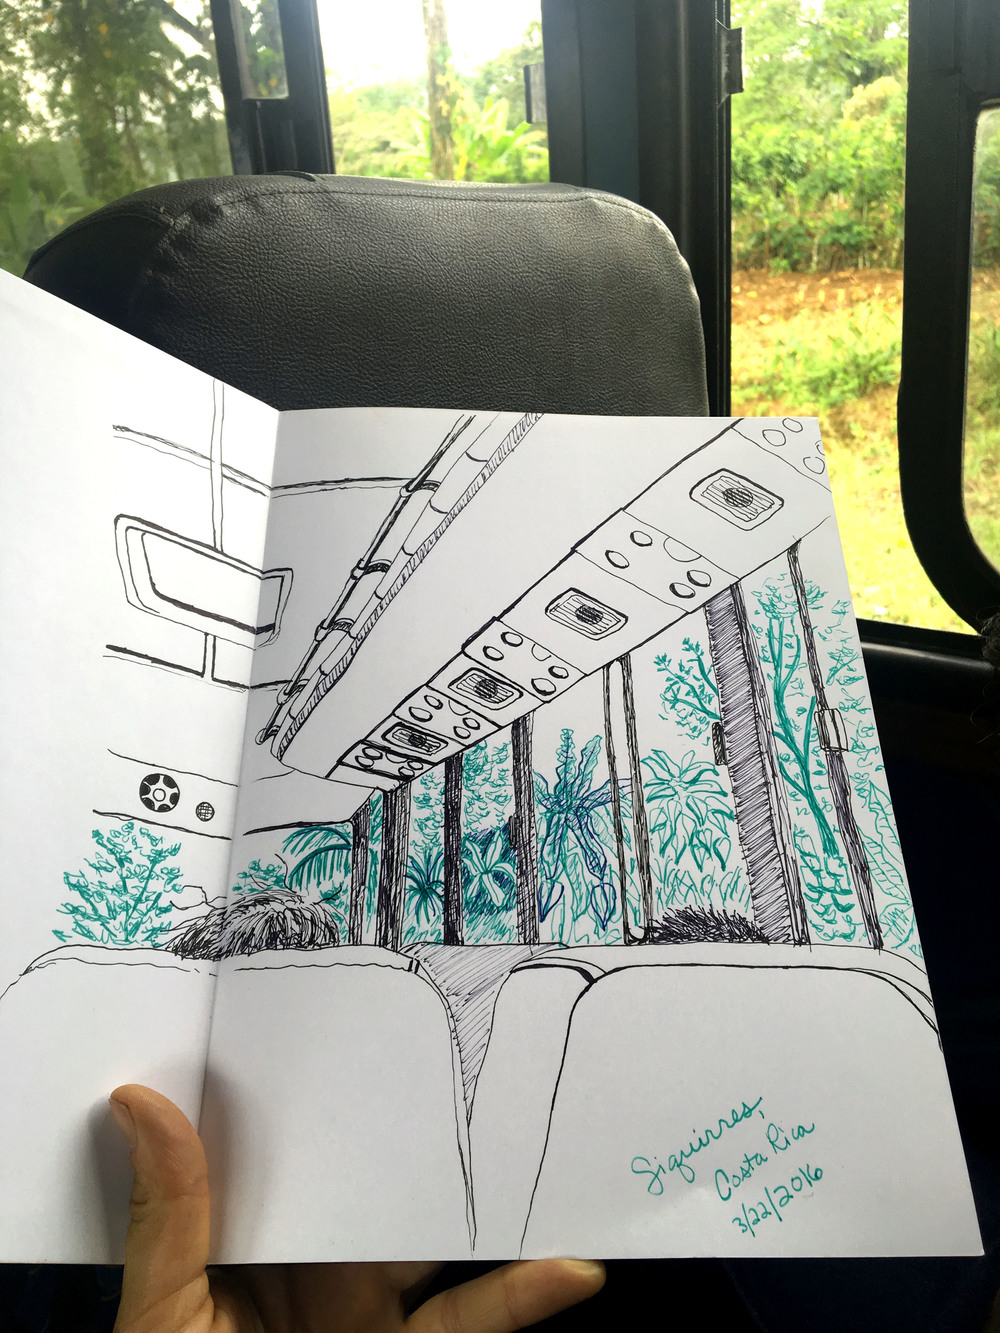 A sketch from the bus going through Siquirres, Costa Rica